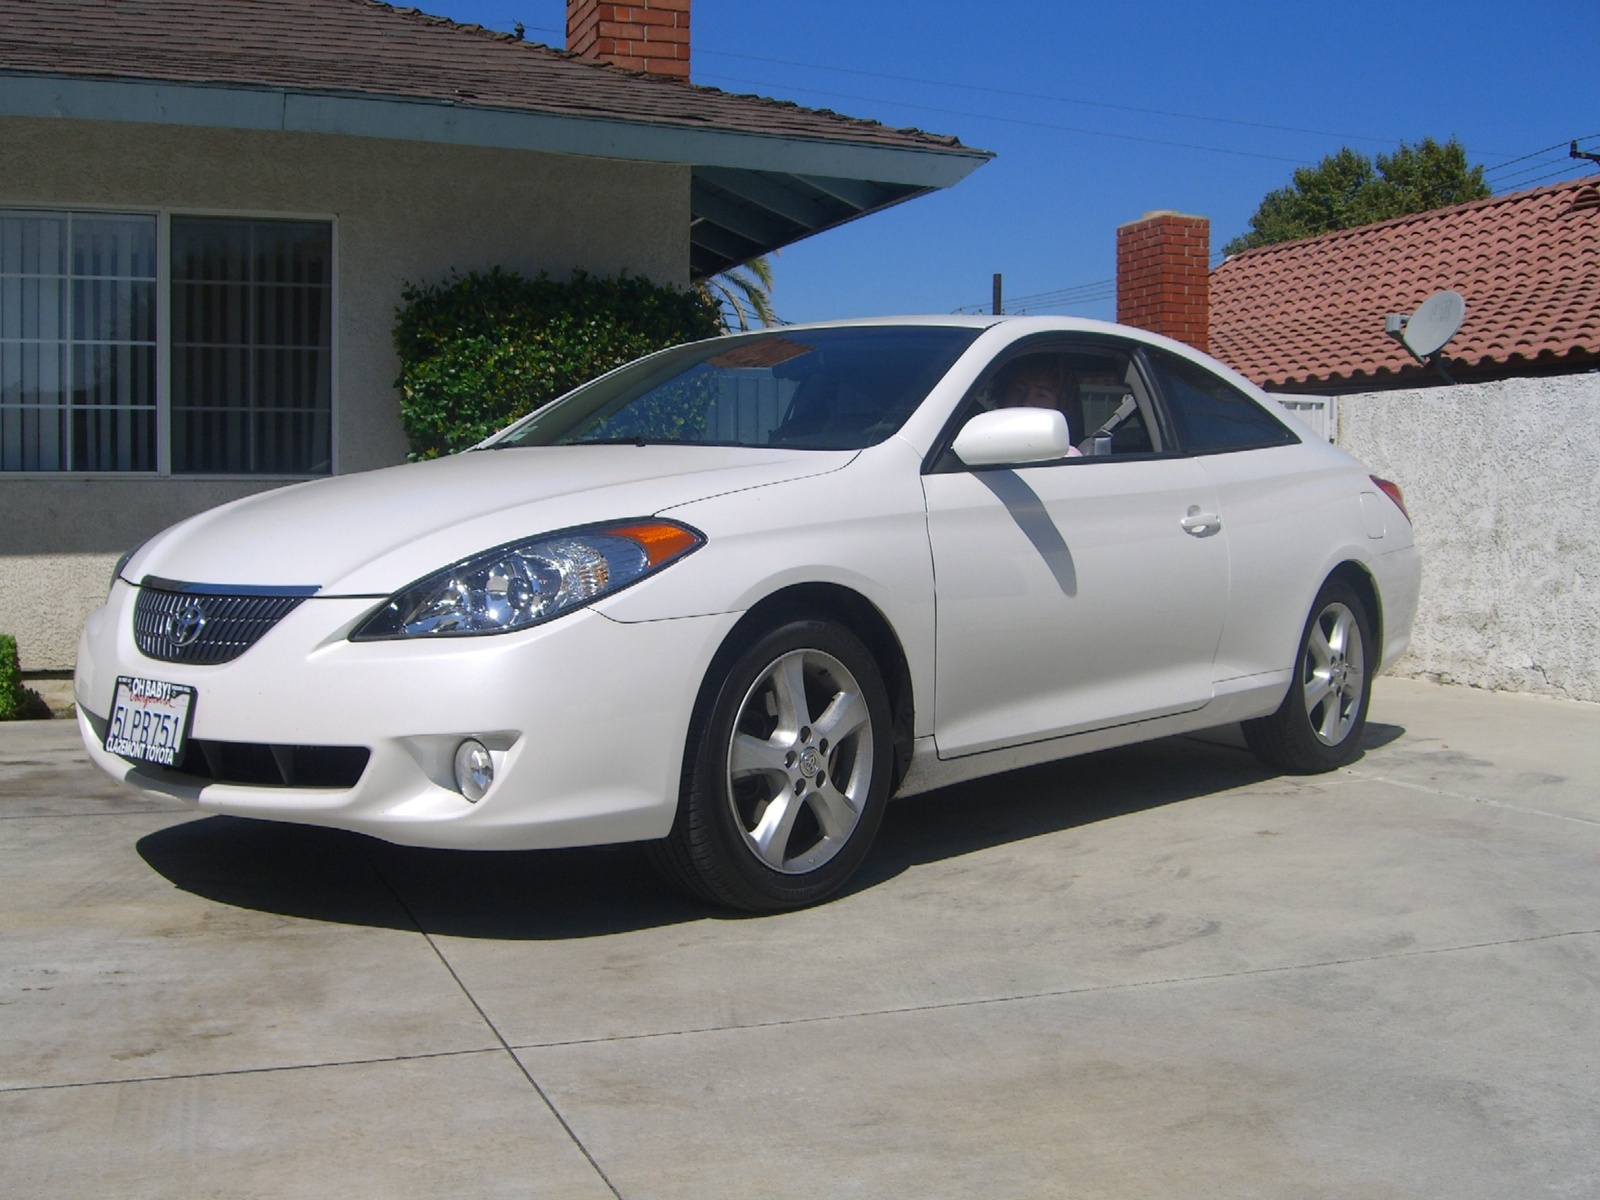 2005 Toyota Camry Solara Overview Cargurus